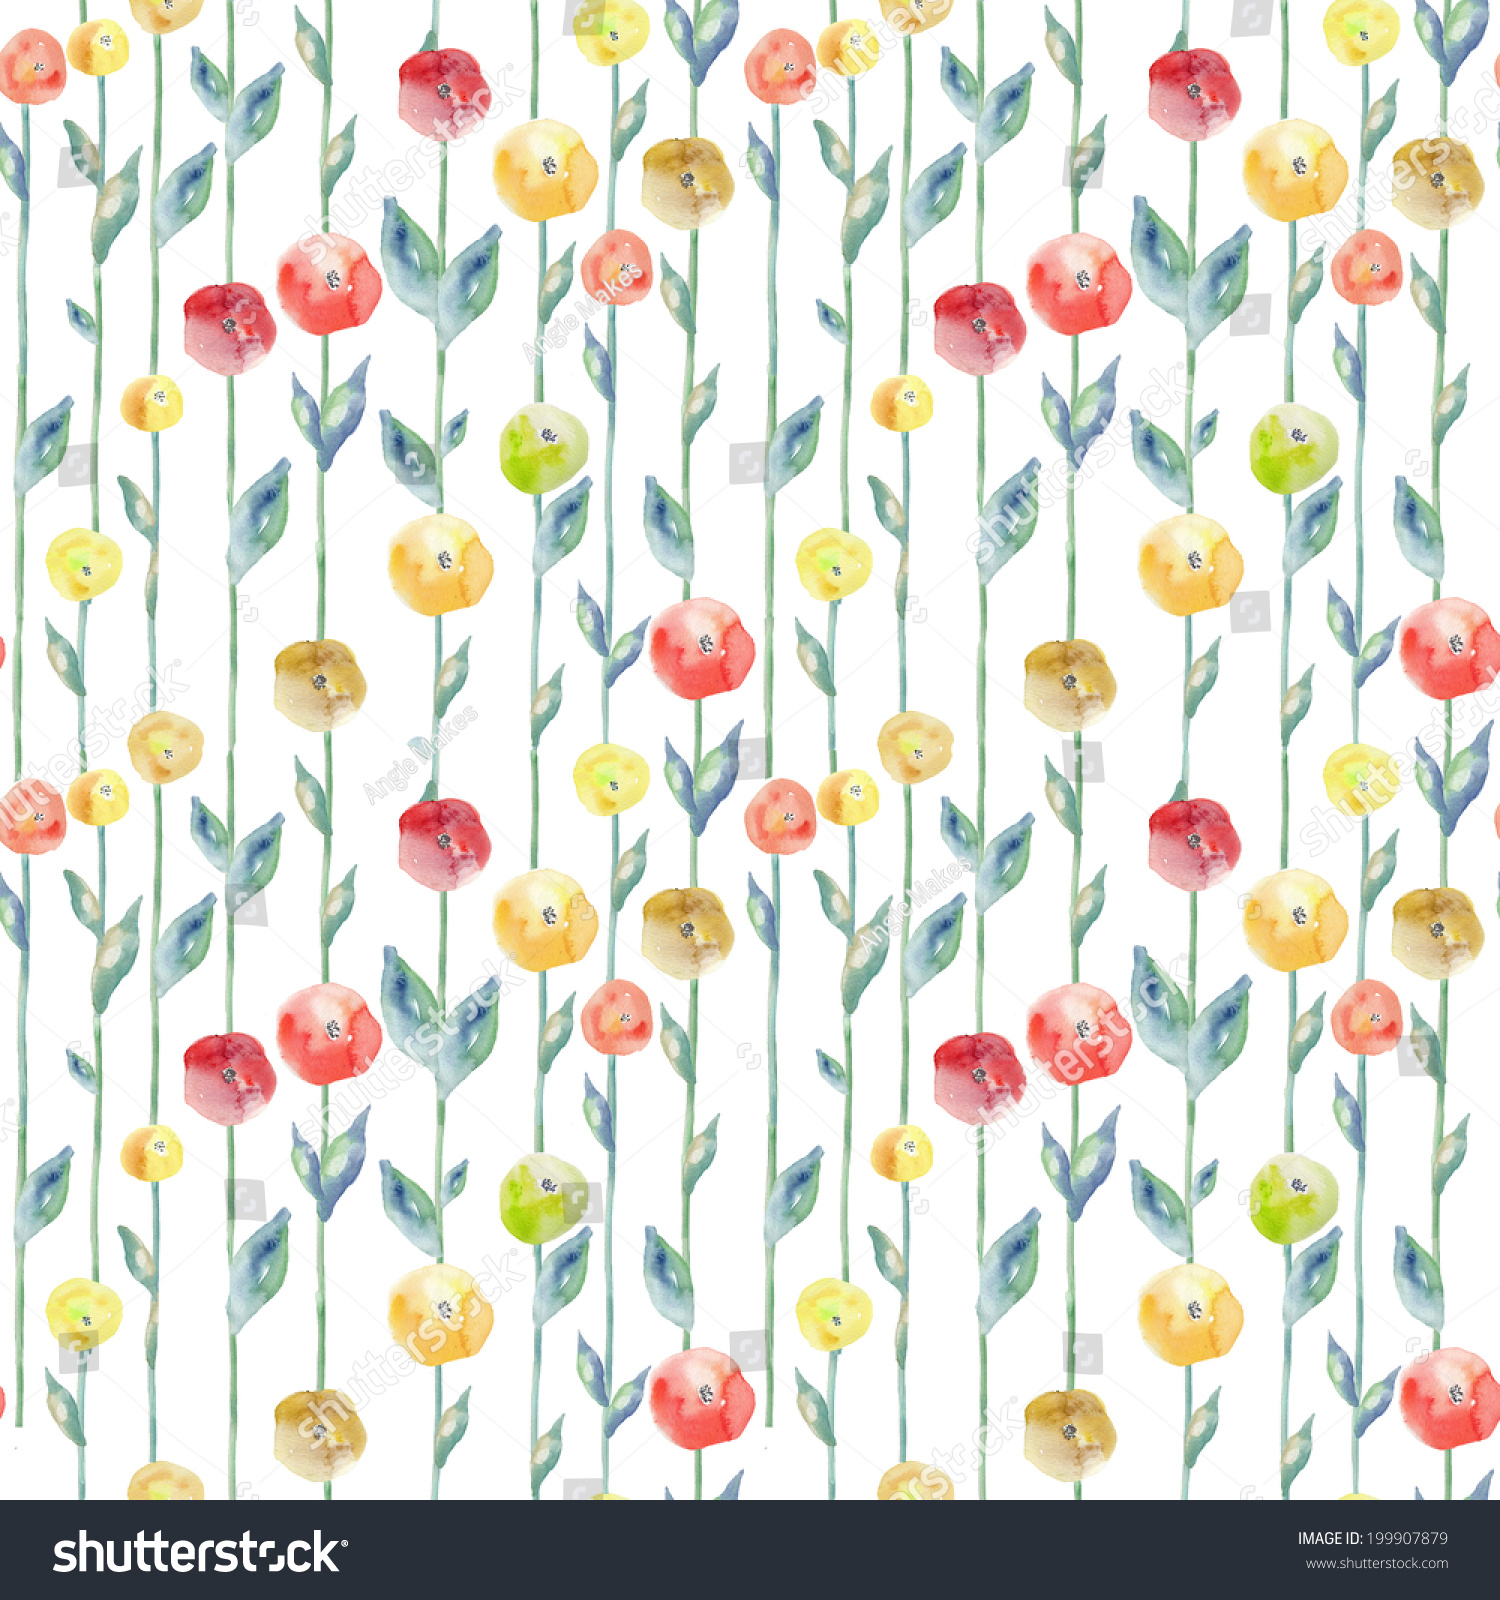 Cute Red Yellow Cute Watercolor Floral Stock Illustration 199907879